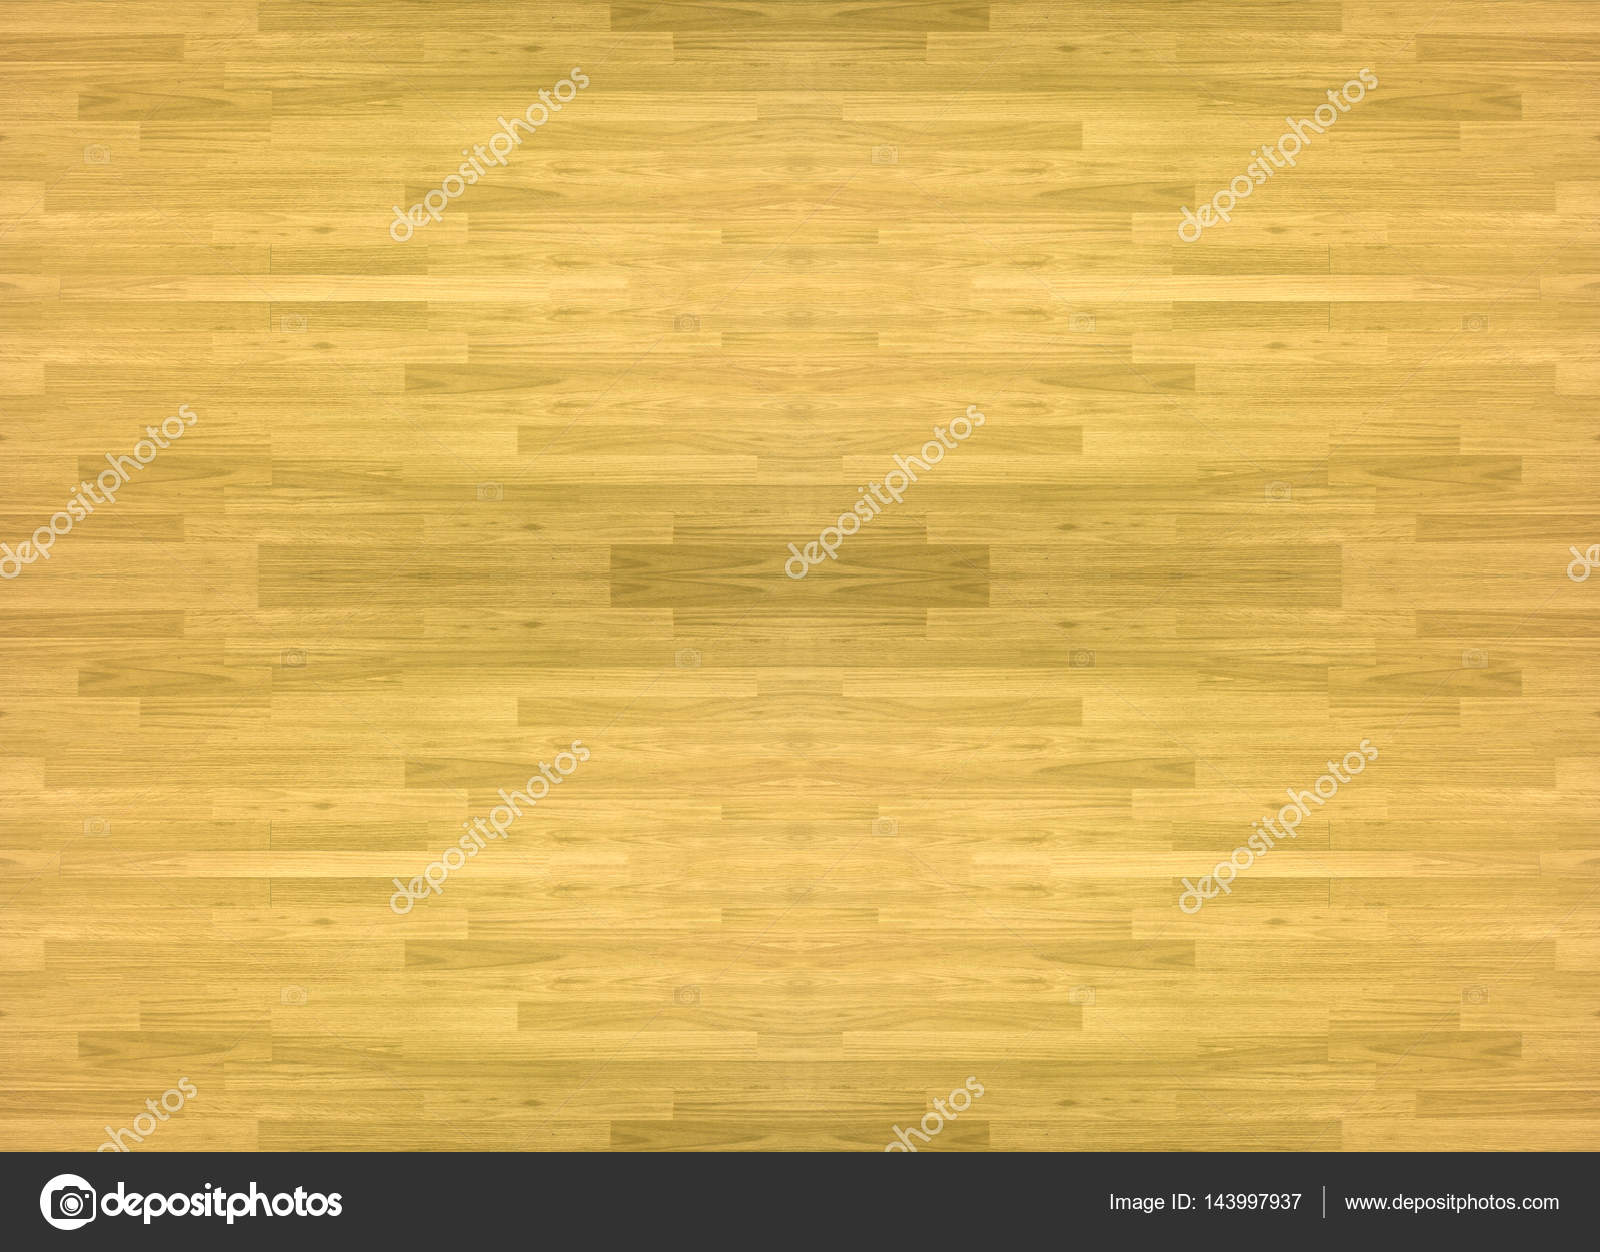 photo stock hardwood depositphotos basketball floor court floors maple